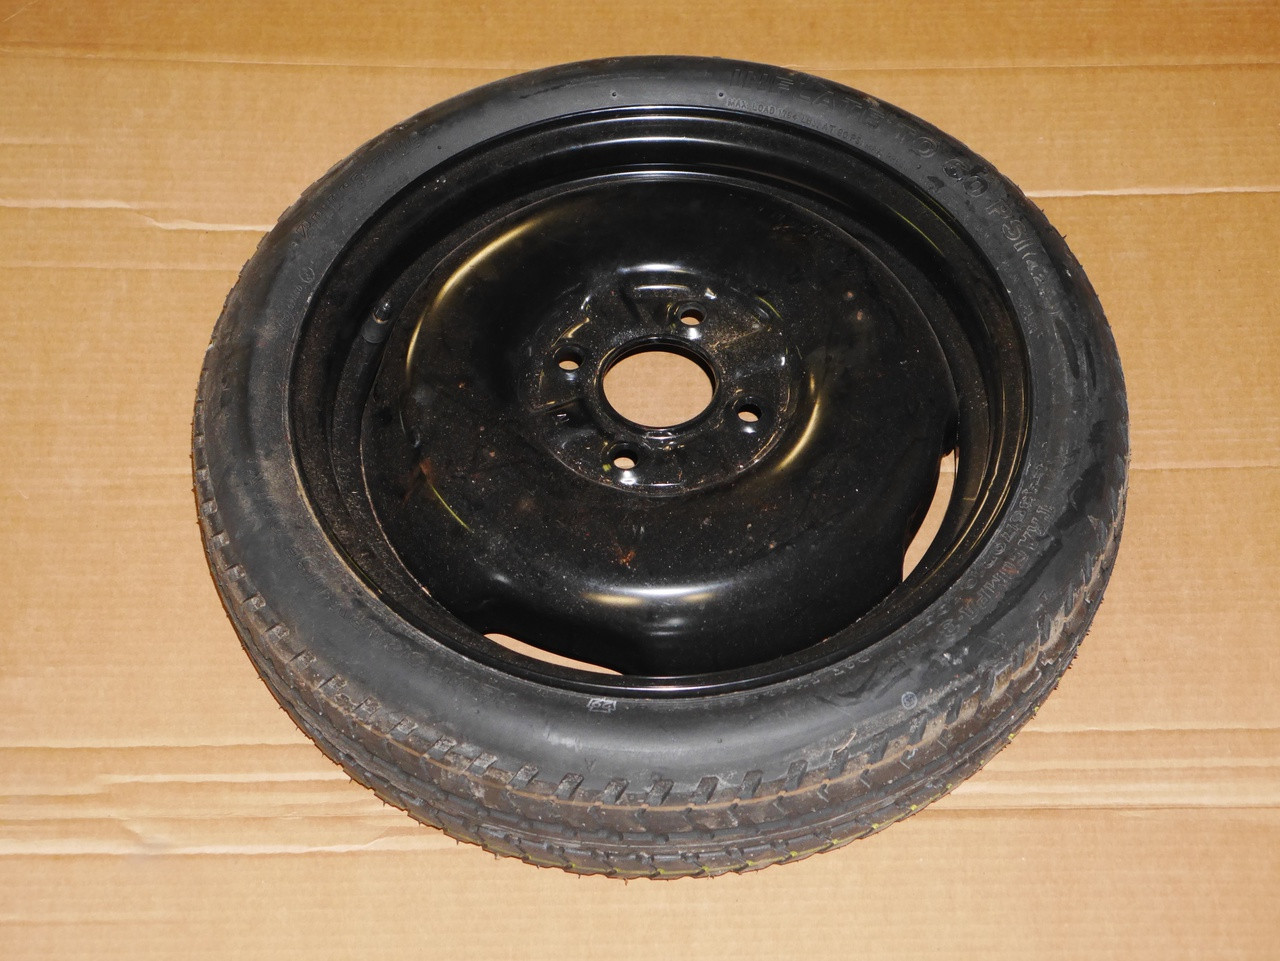 Spare tire and wheel 4lug GVR4